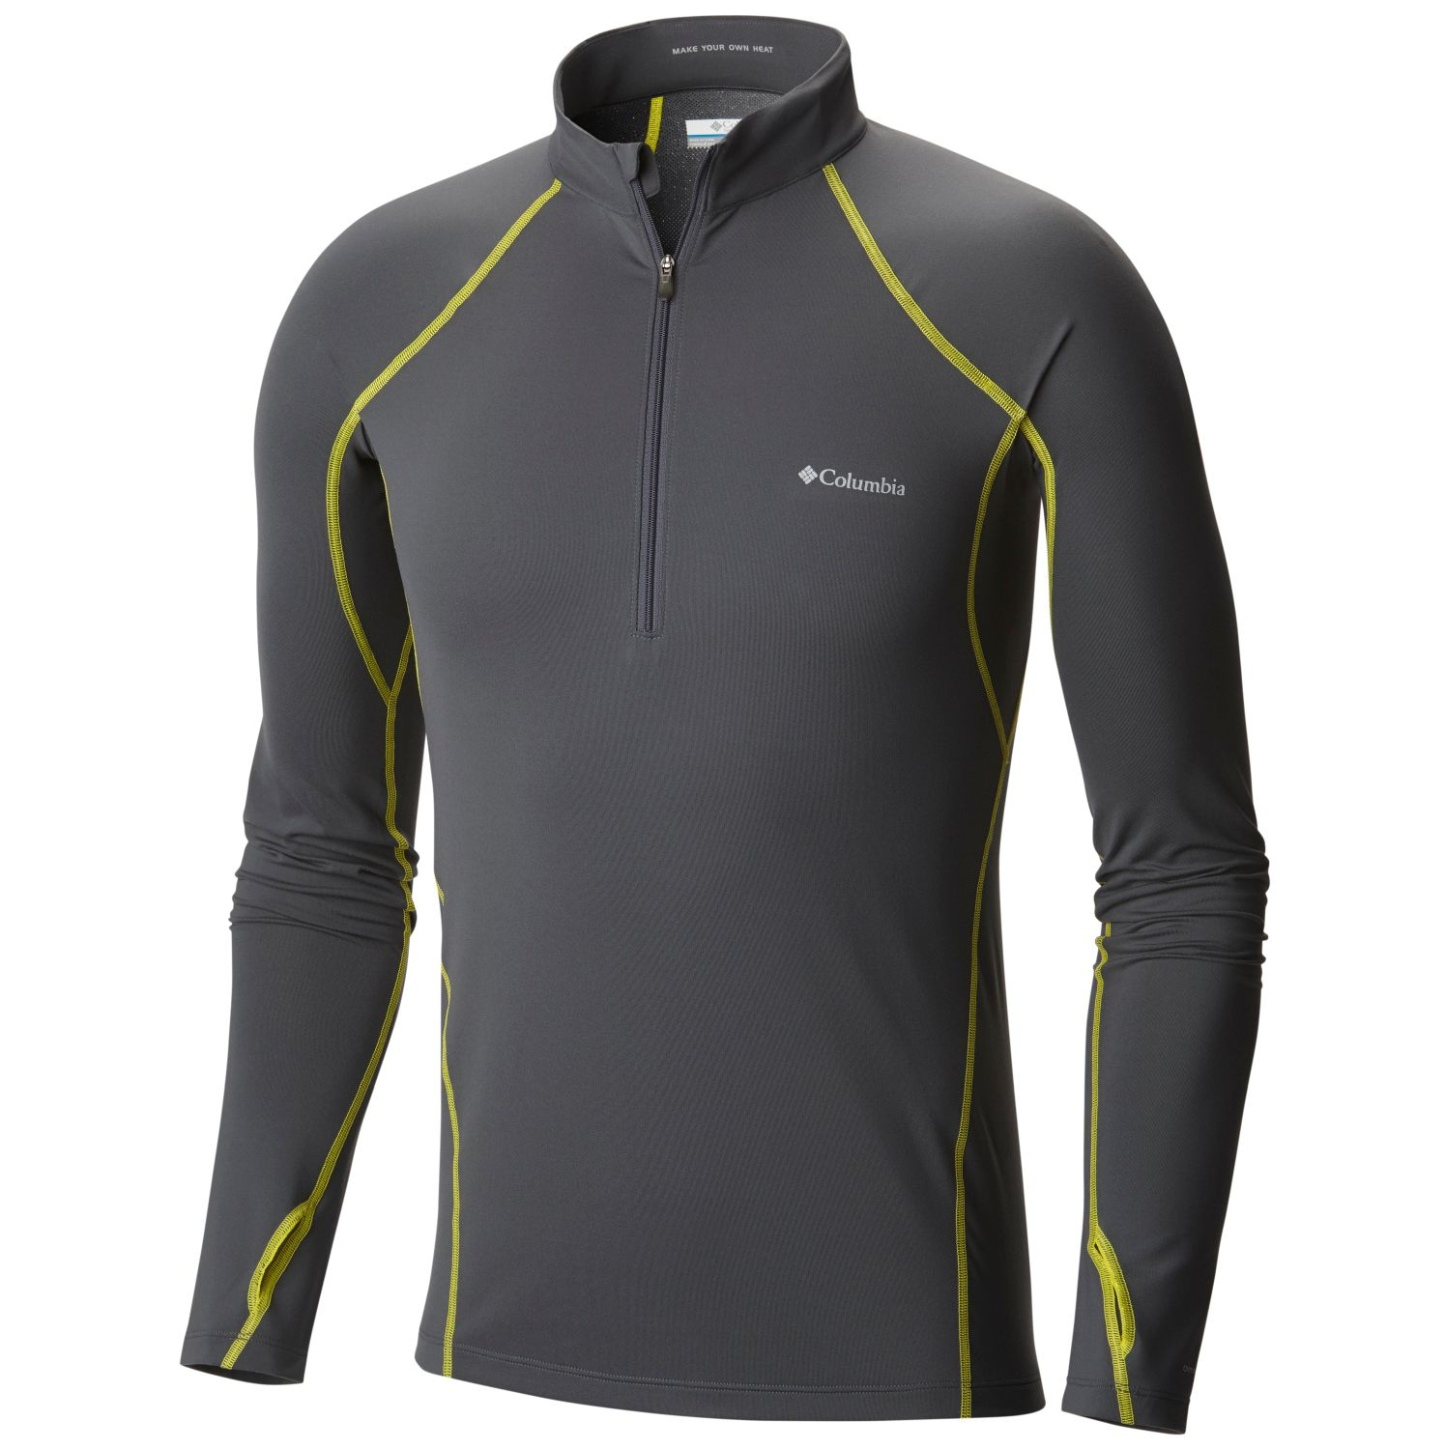 Columbia Men's Midweight Stretch Long Sleeve Half Zip Top Graphite, Acid Yellow-30